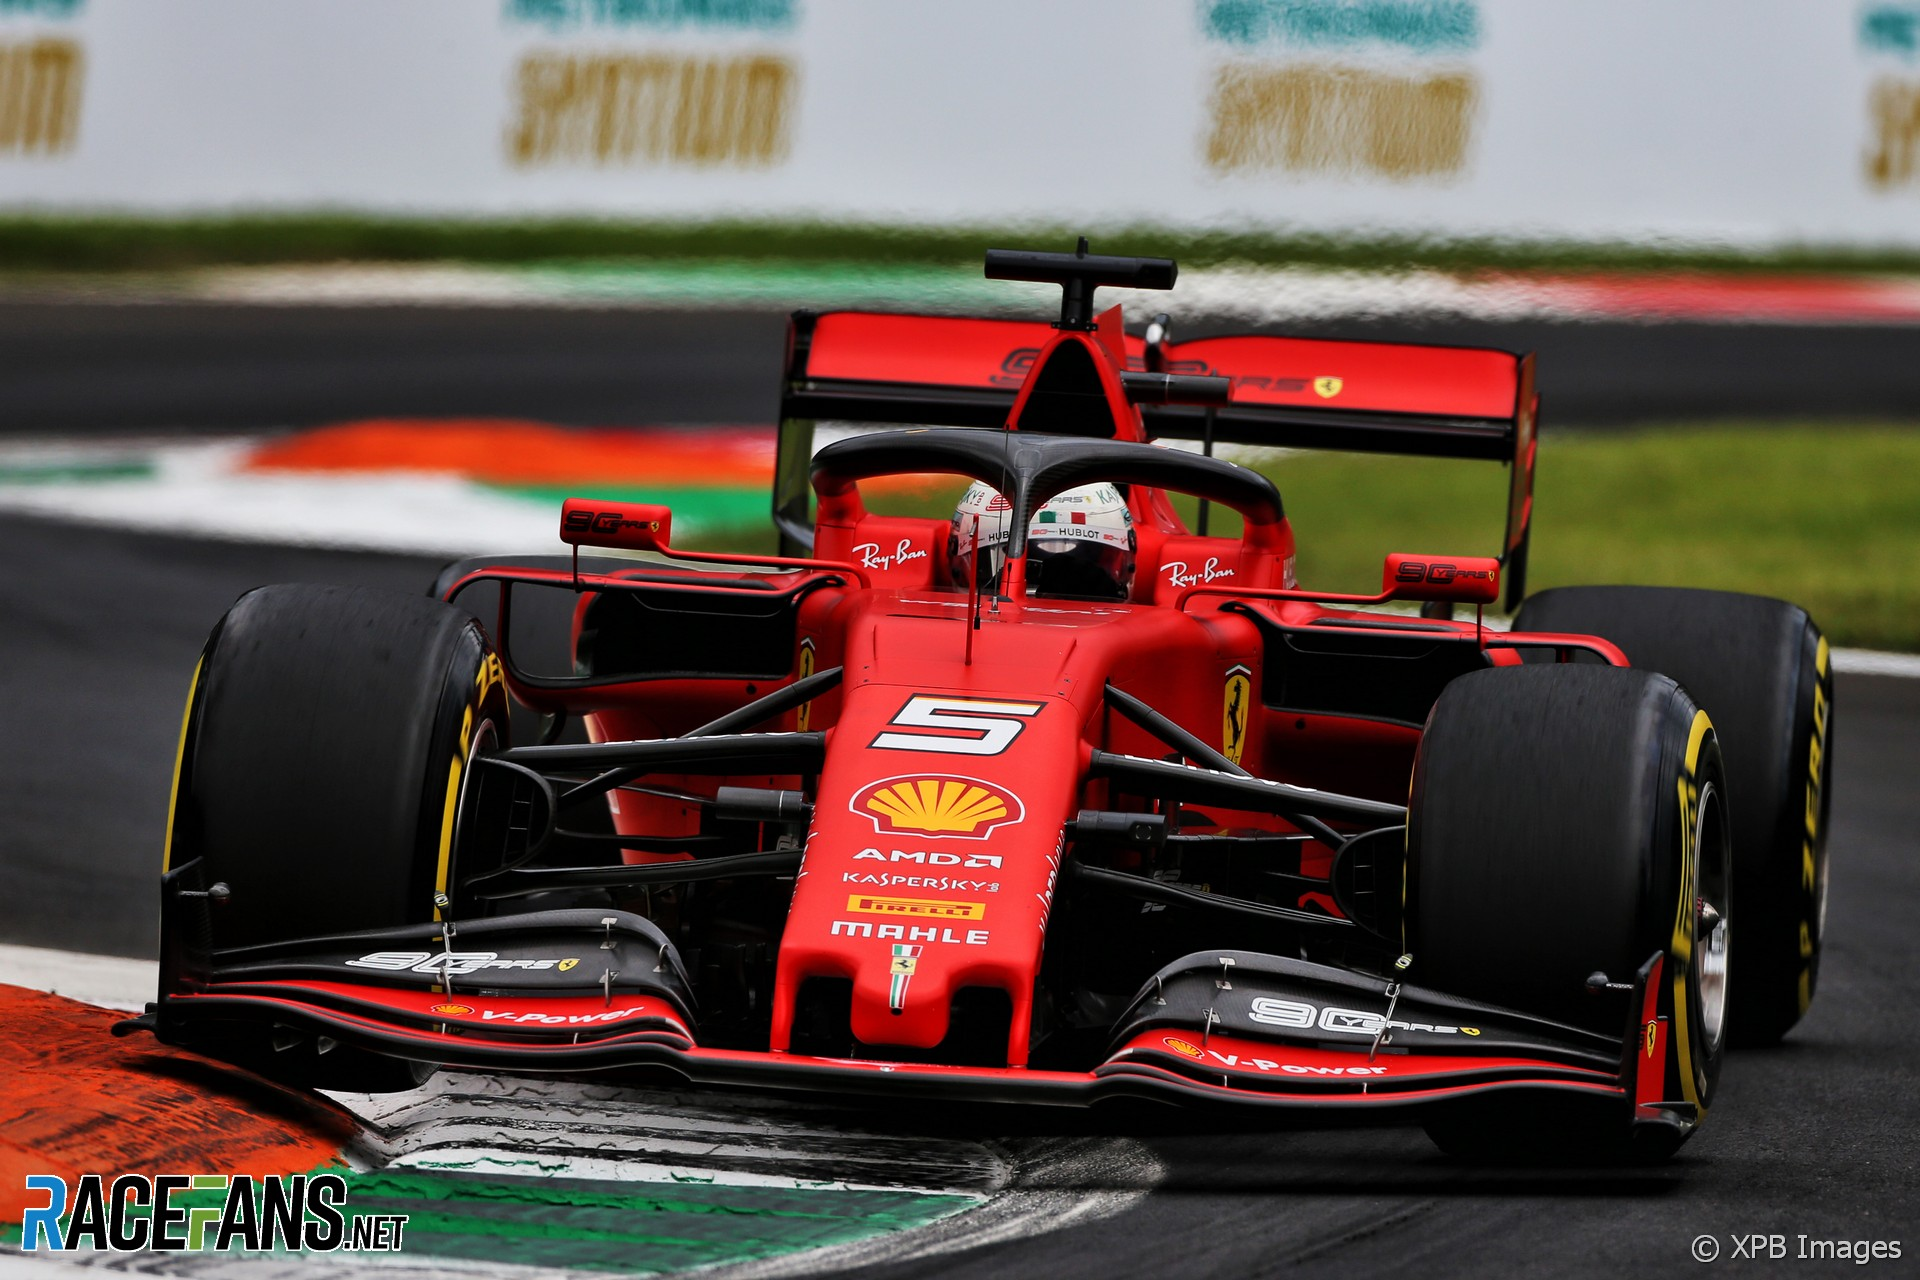 """Vettel three points from race ban after penalty for """"dangerous incident"""""""